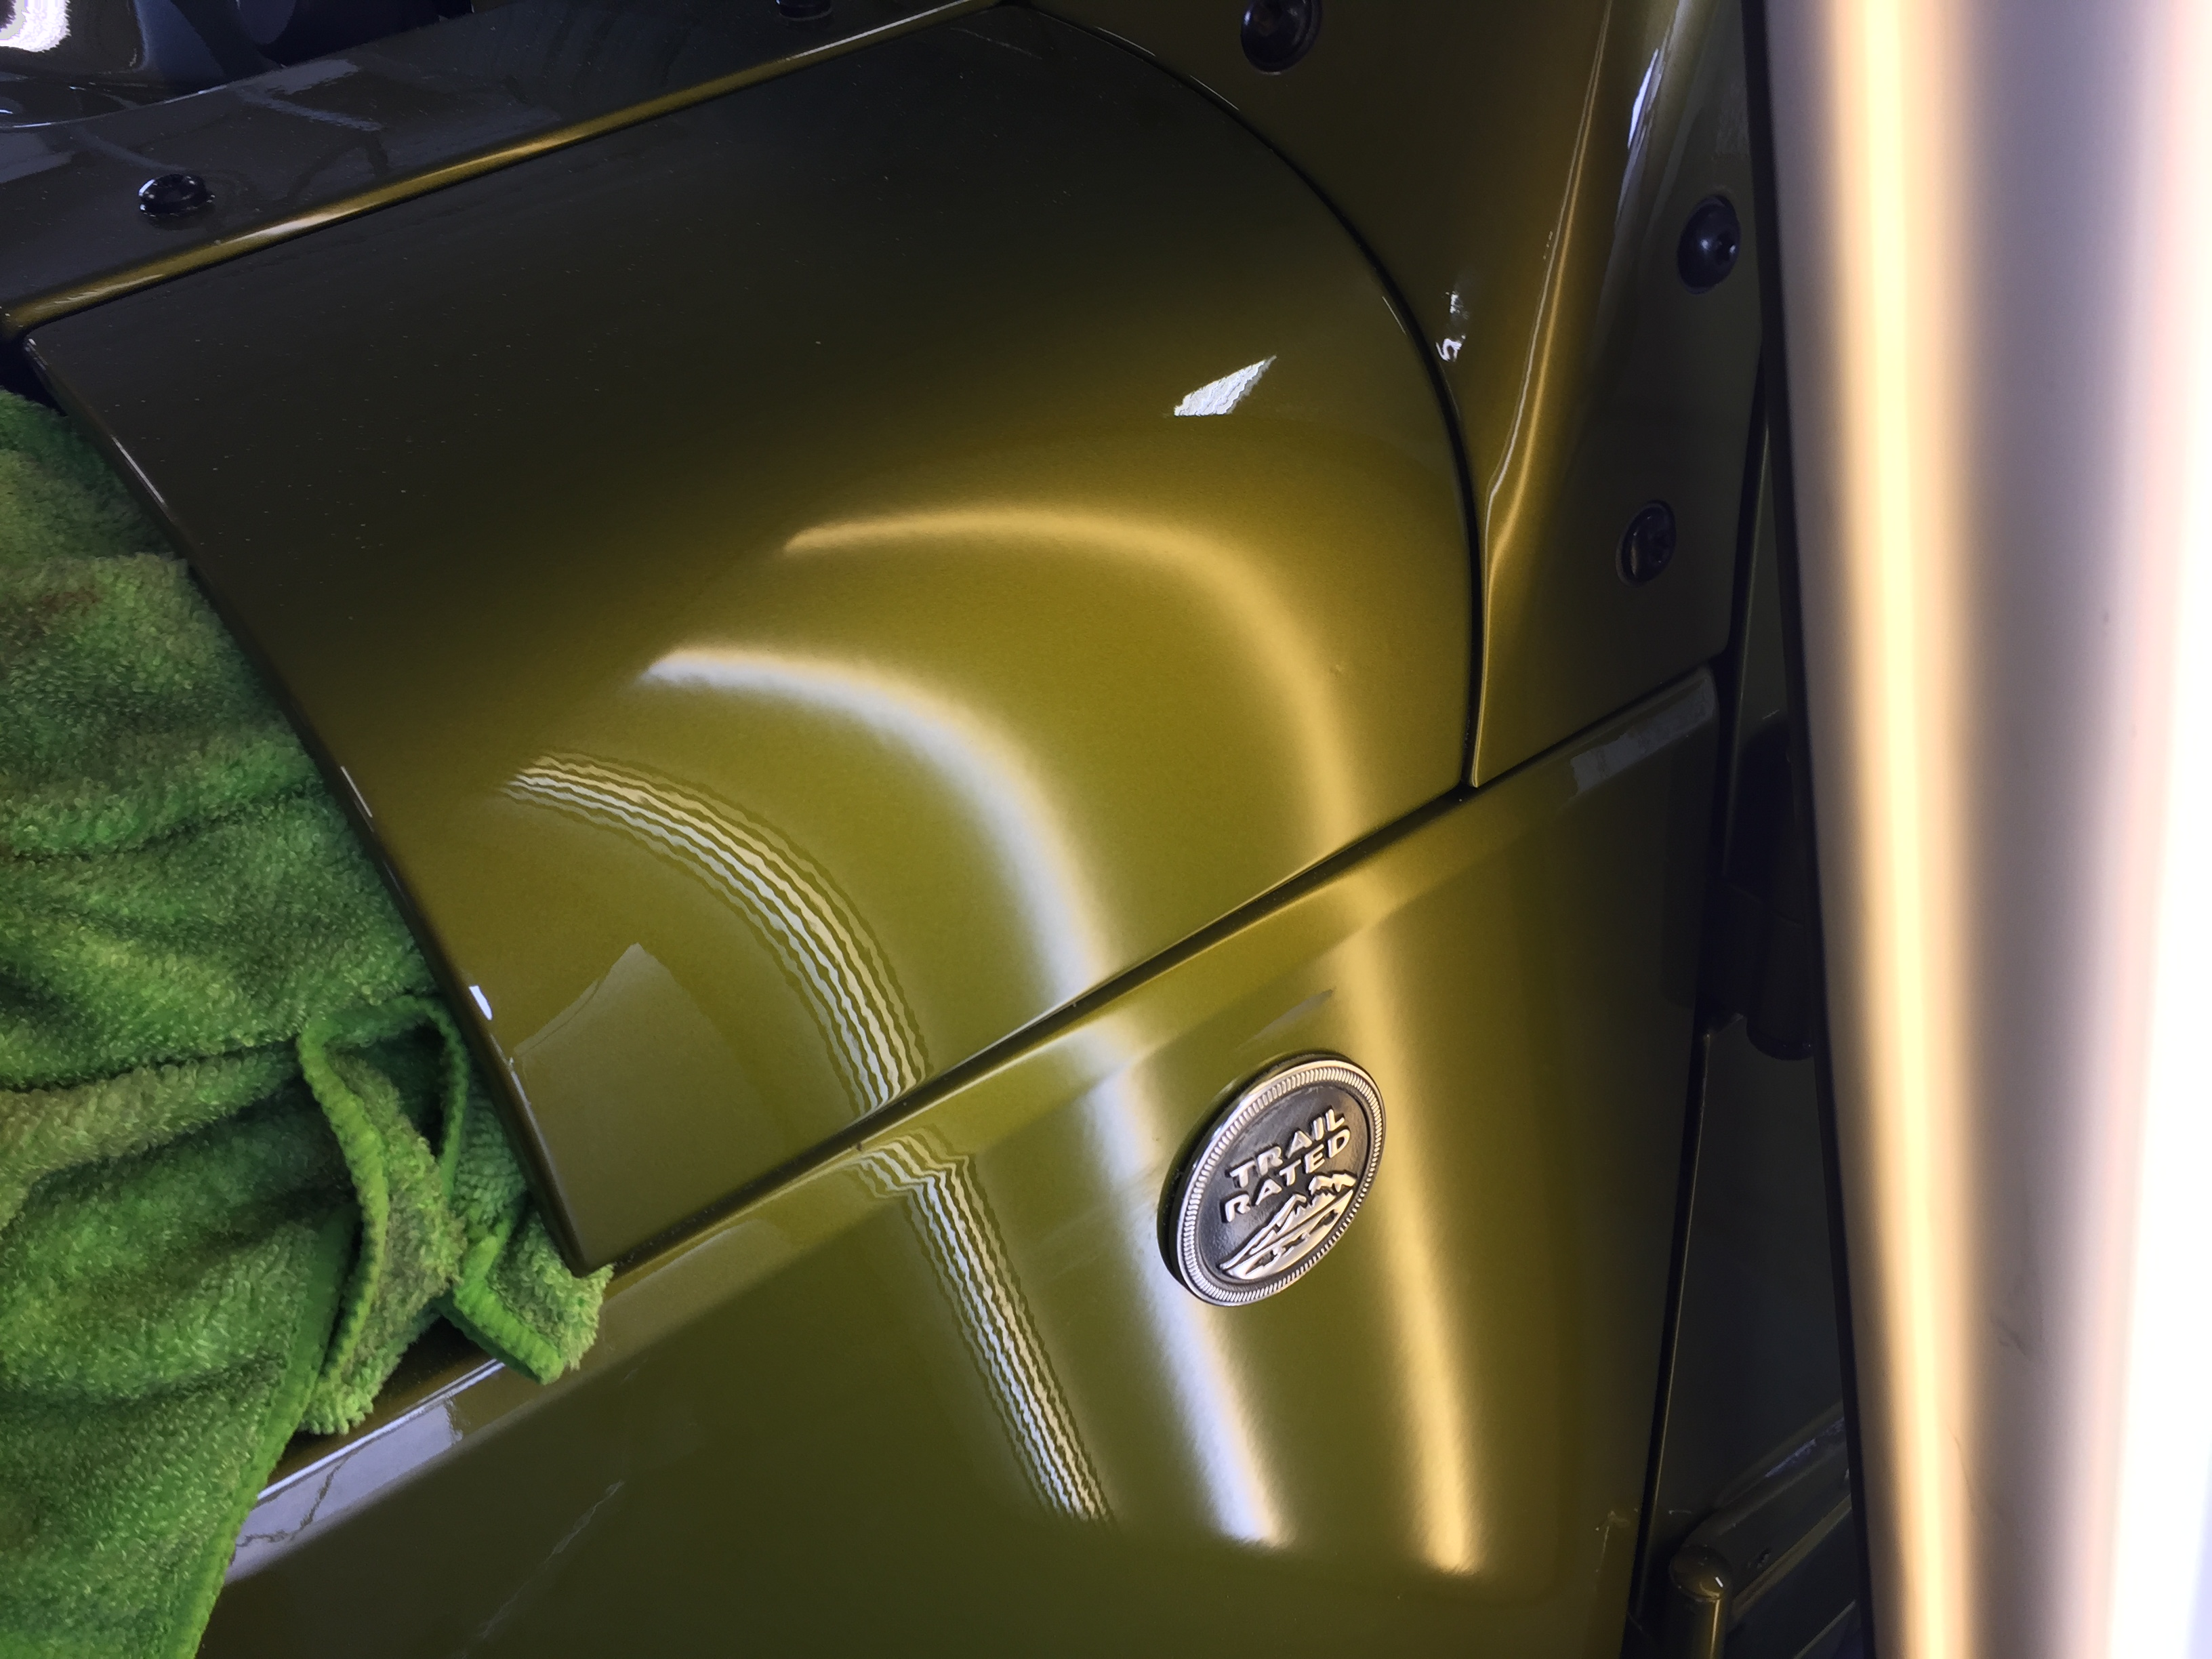 2007 Jeep Wrangler Rubicon Cowl Dent. Work was done by Michael Bocek from 217dent.com. Go to http://217dent.com an estimate, or for more information about paintless dent removal.